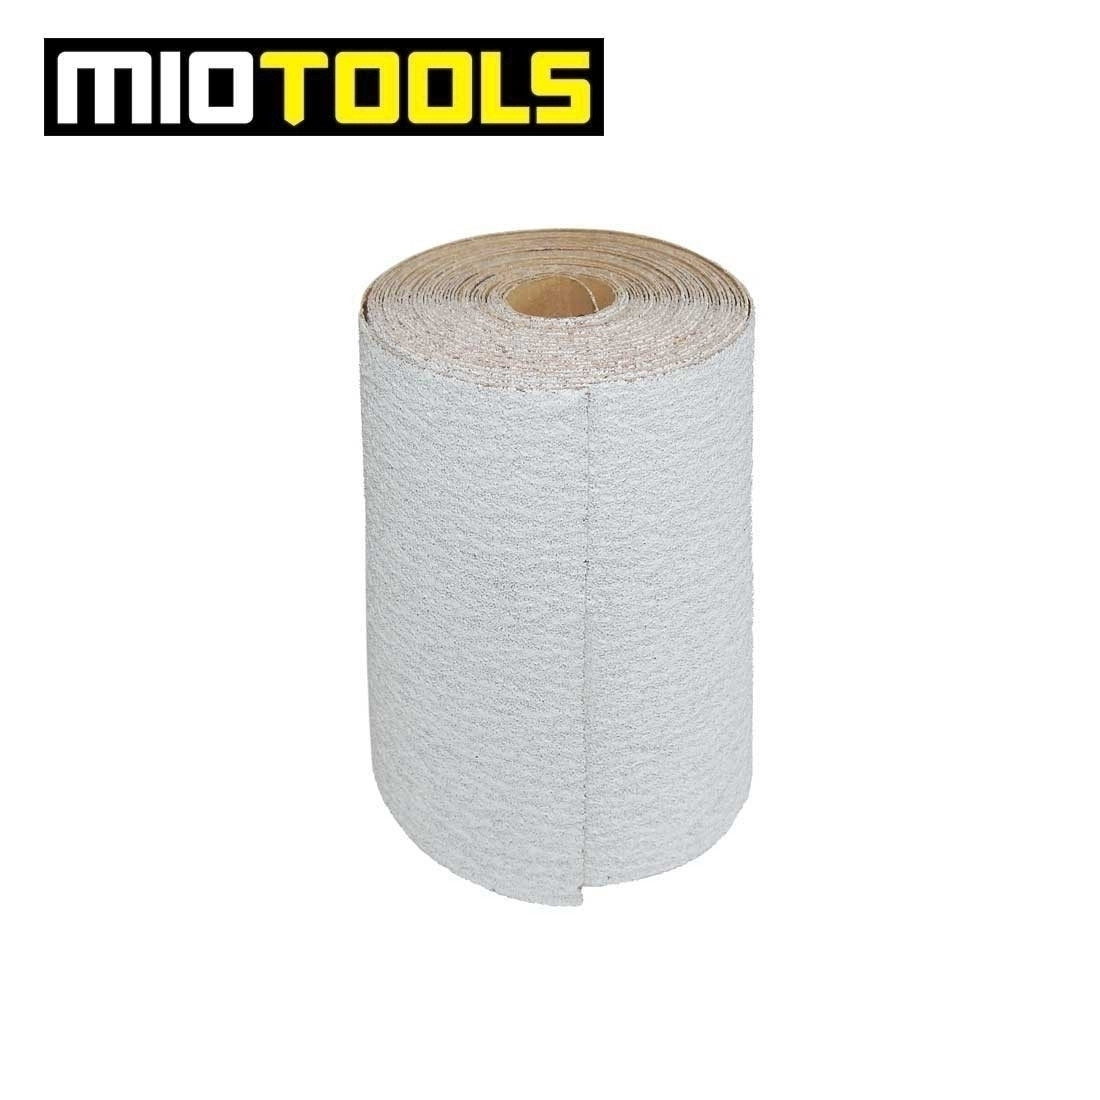 MioTools sanding paper roll for hand sanders / 93 mm x 5 m / stearated Aluminium Oxide